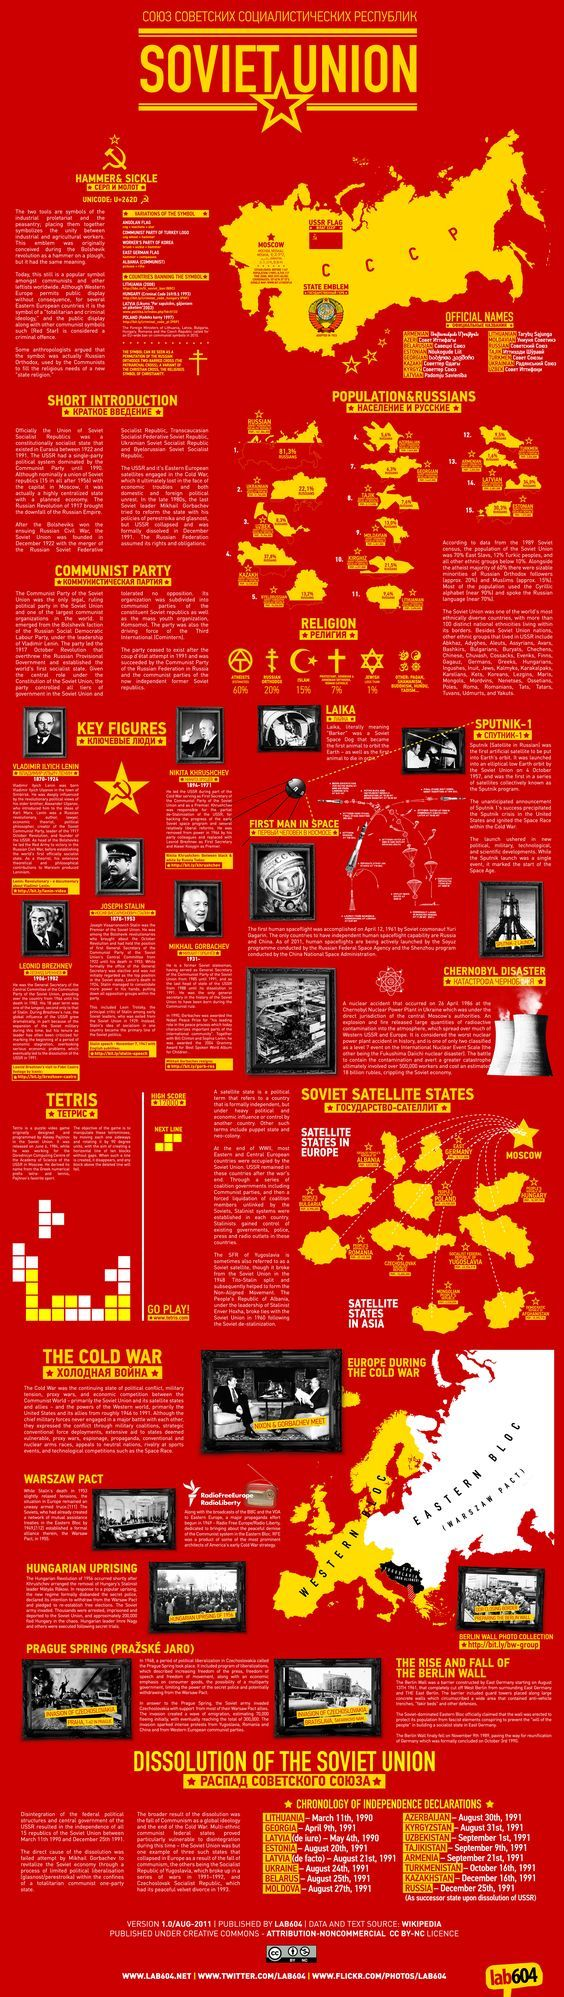 Más tamaños | Soviet Union - Infographic | Flickr: ¡Intercambio de fotos!